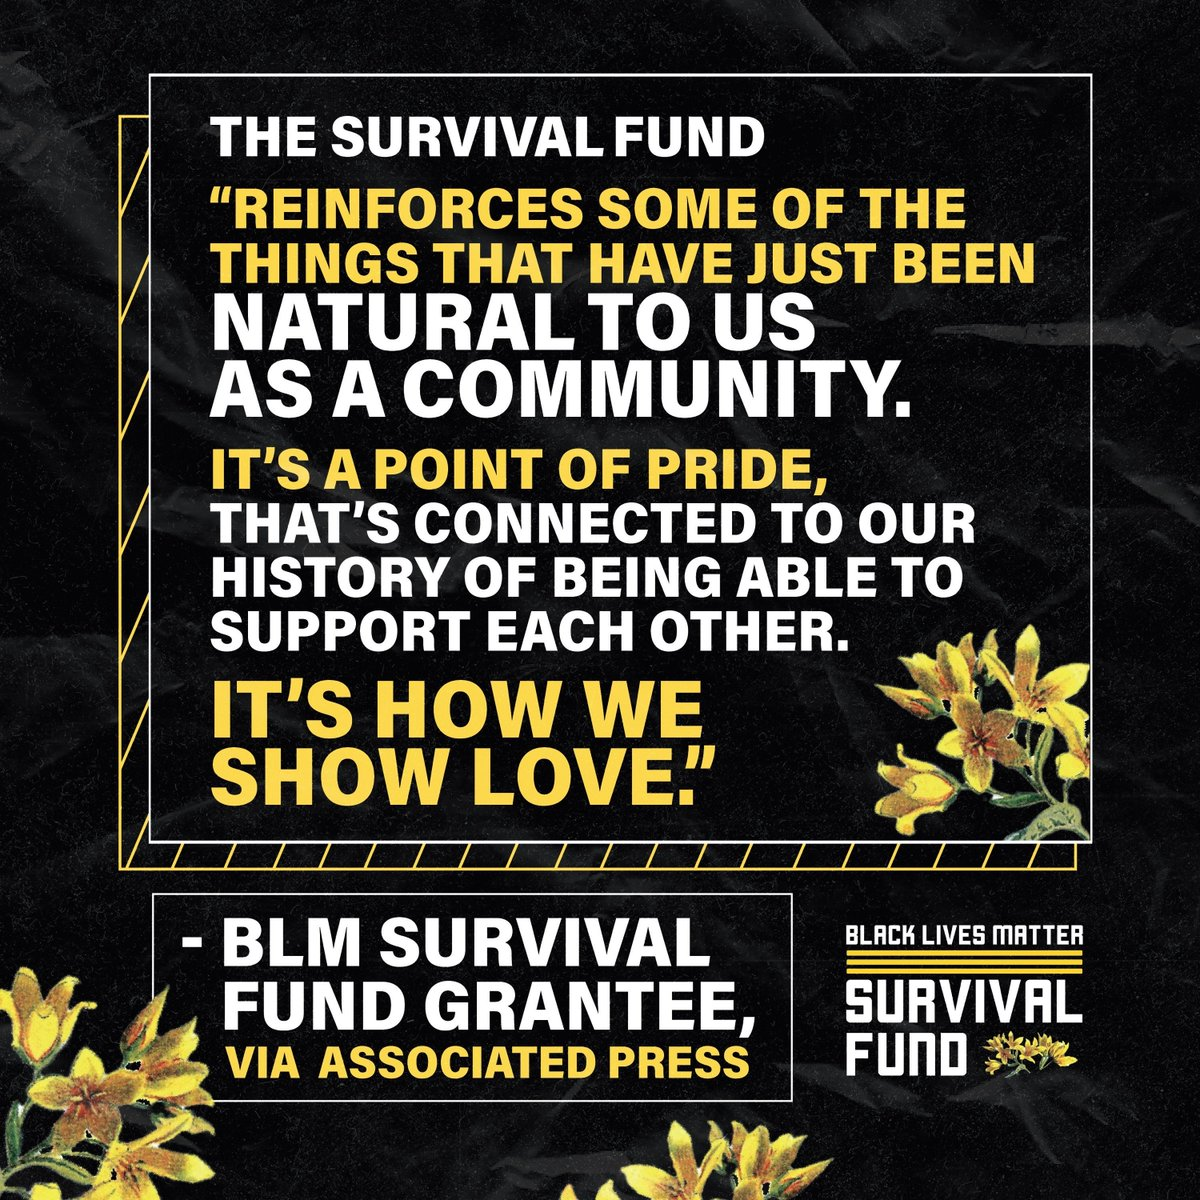 Black people keep Black people safe. Yesterday, the #BLMSurvivalFund met its goal of committing $3 mil to Black people in need. BLMGNF has now committed $25 mil to Black ppl since 2020. Read our @AP exclusive by @aaronlmorrison to learn more.